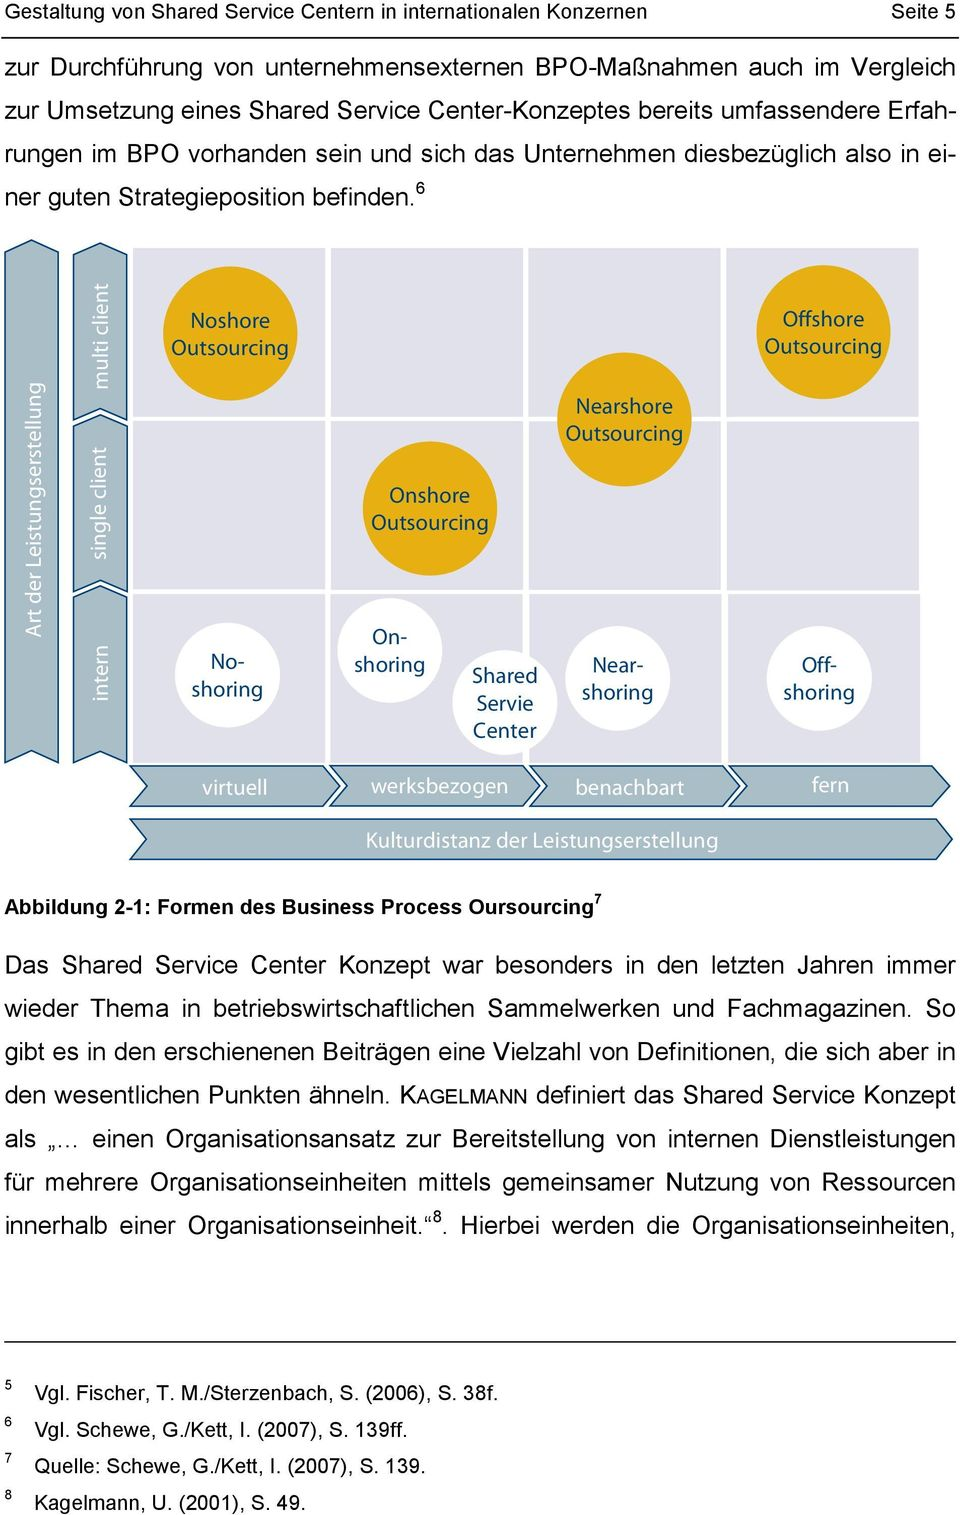 6 Art der Leistungserstellung single client multi client intern Noshore Outsourcing Onshore Outsourcing Shared Servie Center Nearshore Outsourcing Offshore Outsourcing Noshoring Onshoring Nearshoring